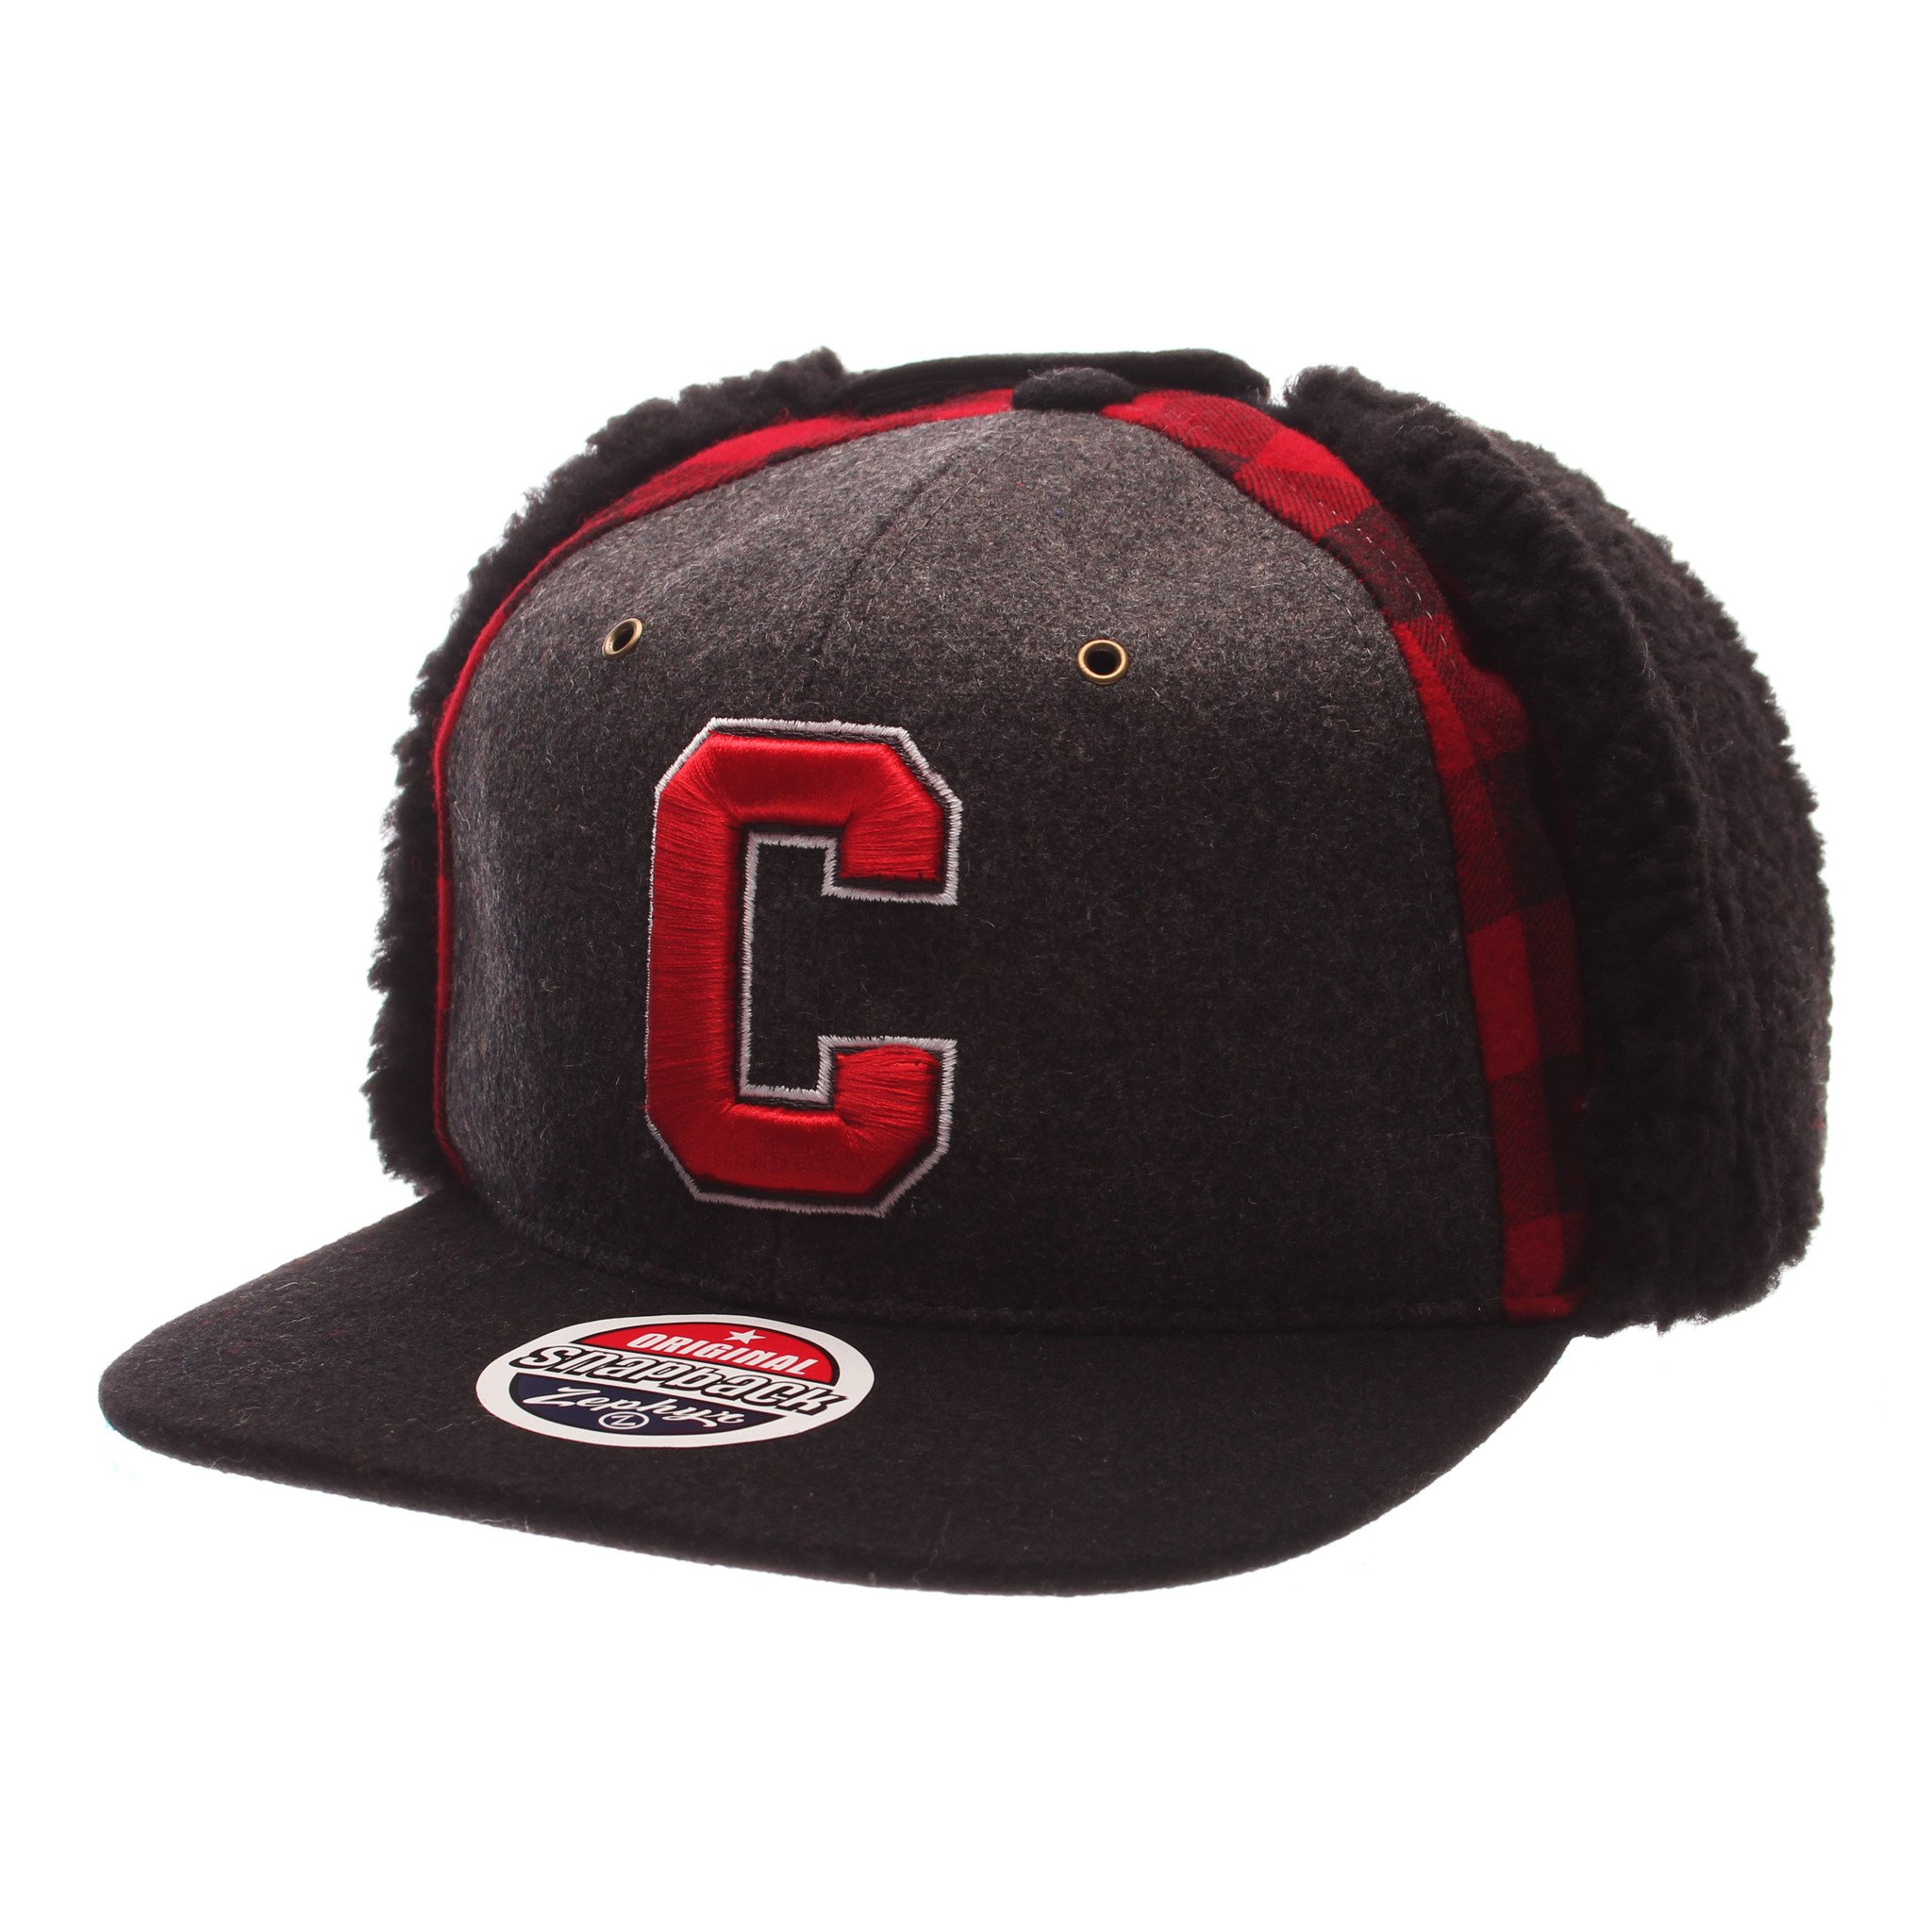 Big Red W: Cornell Big Red Official NCAA Forester Adjustable Hat Cap